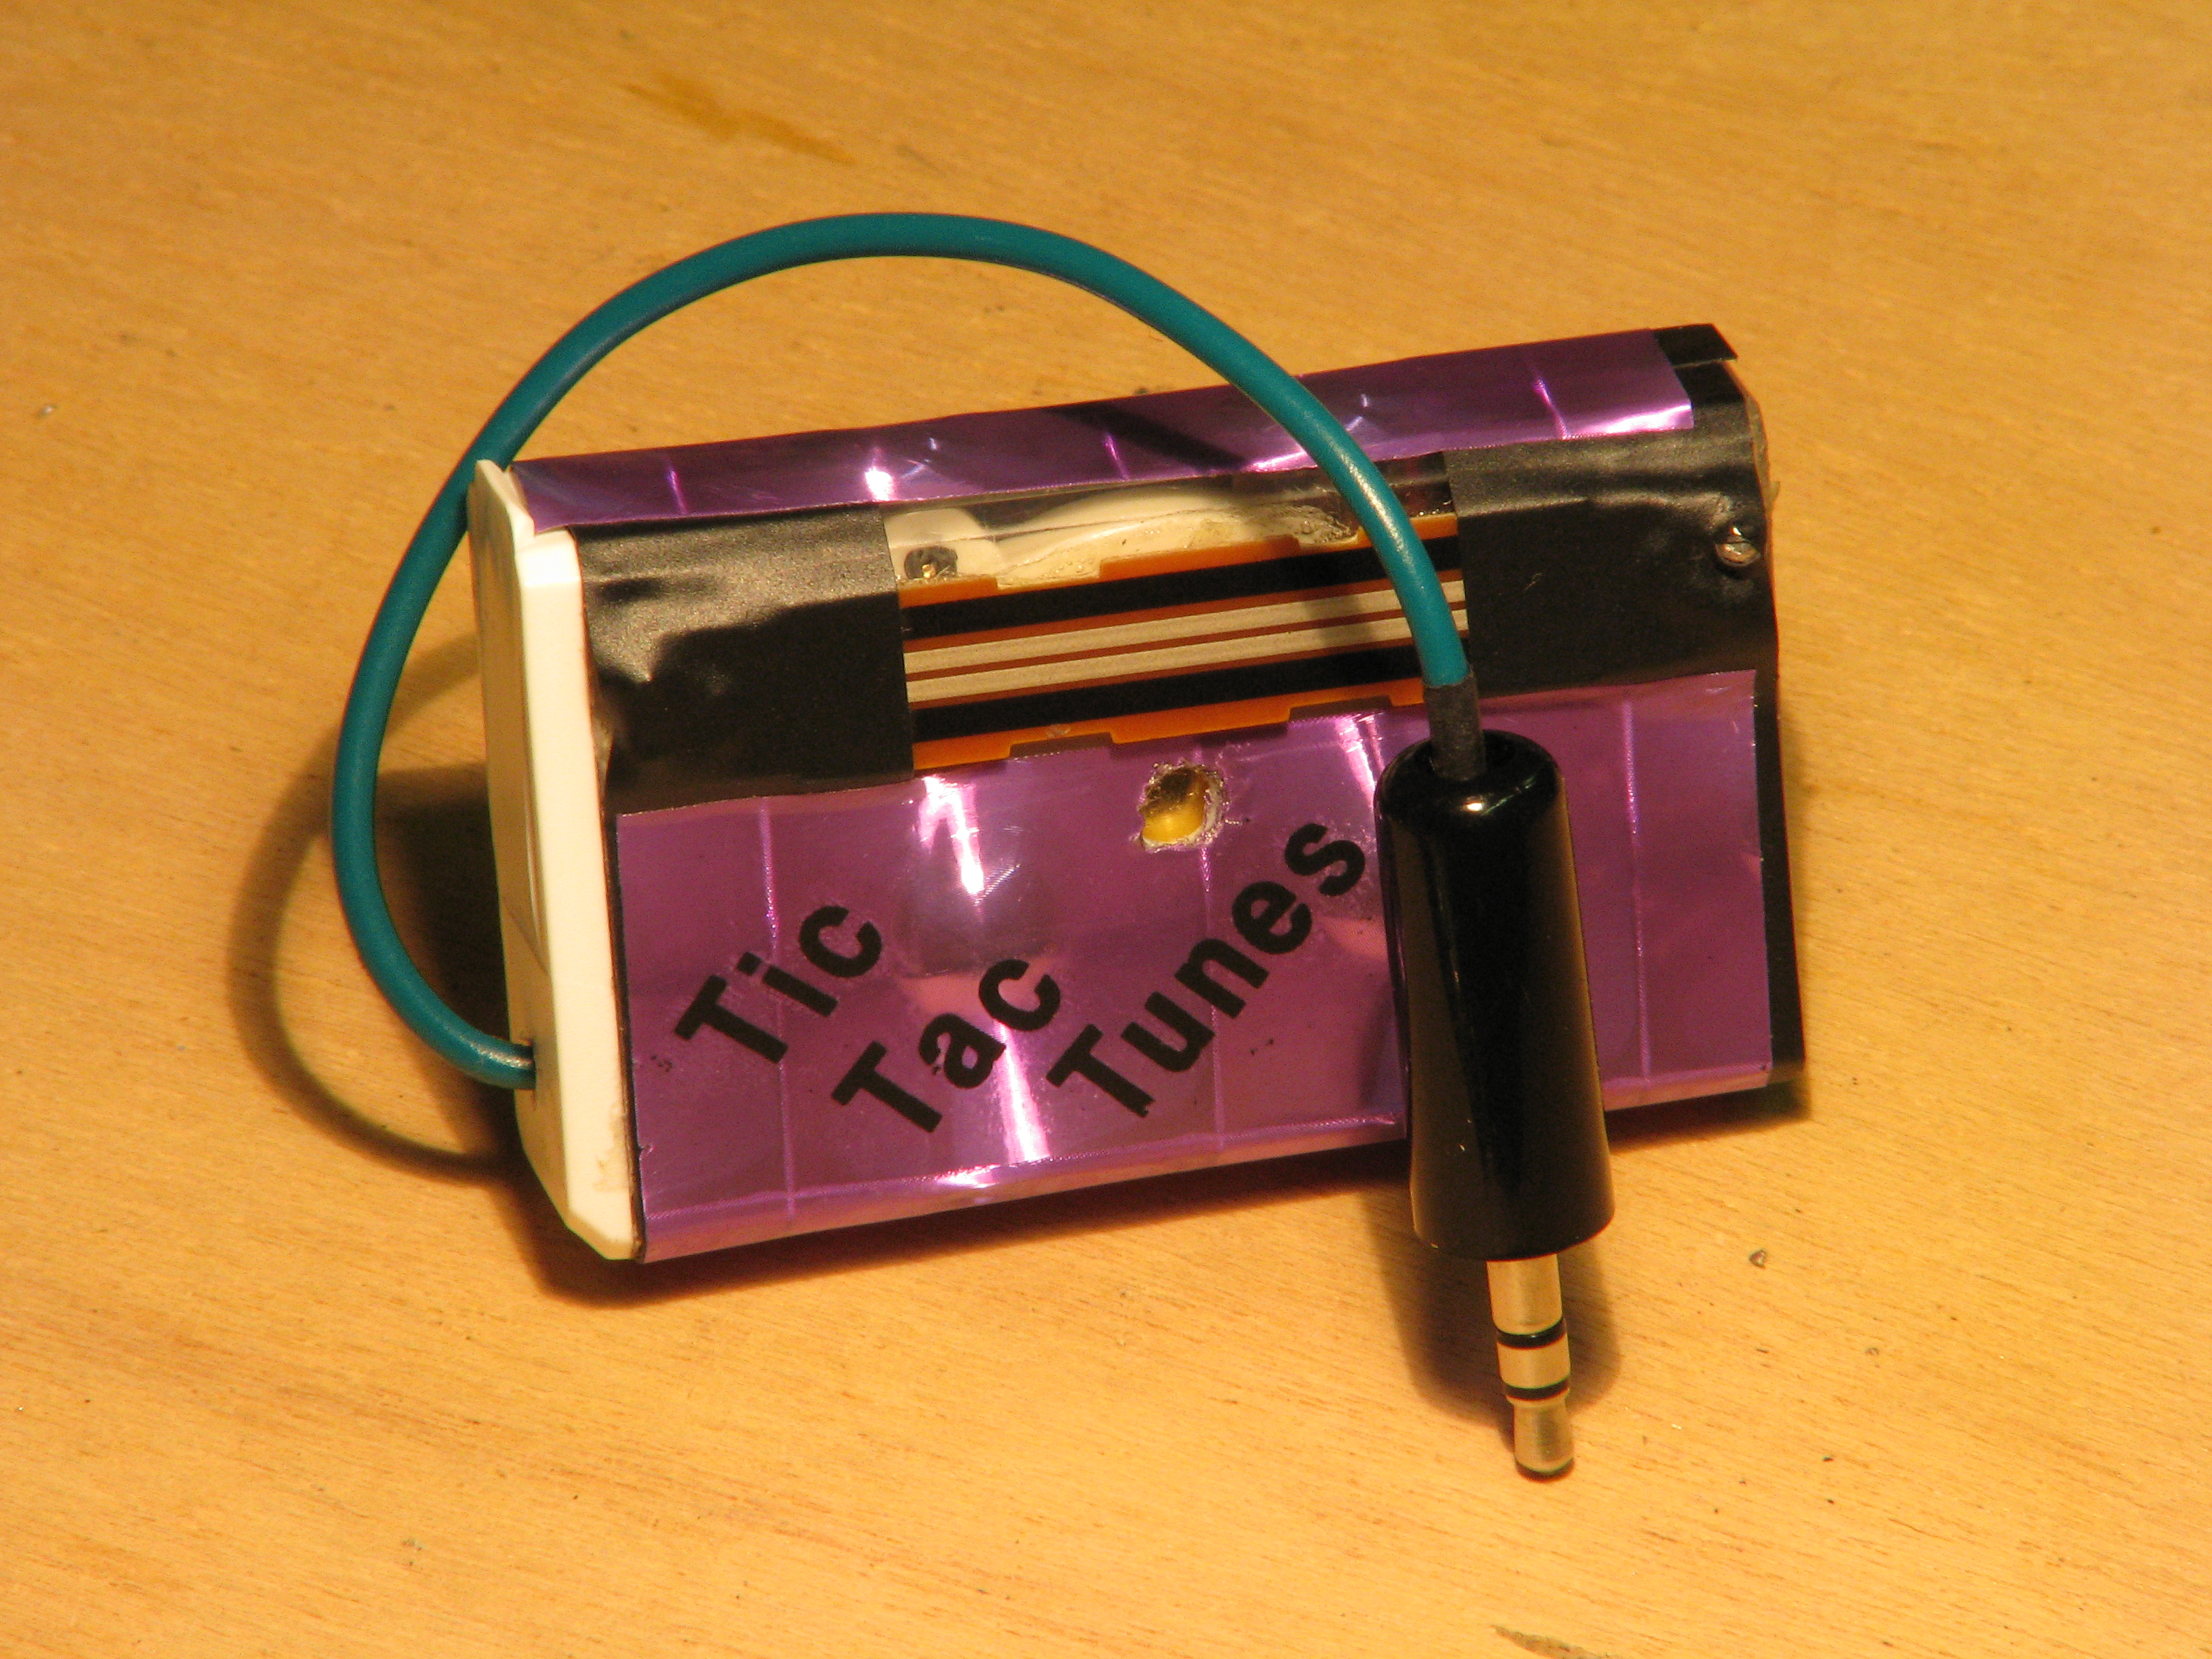 Picture of Tic Tac Tunes - Now With Tic Tac Beat Box